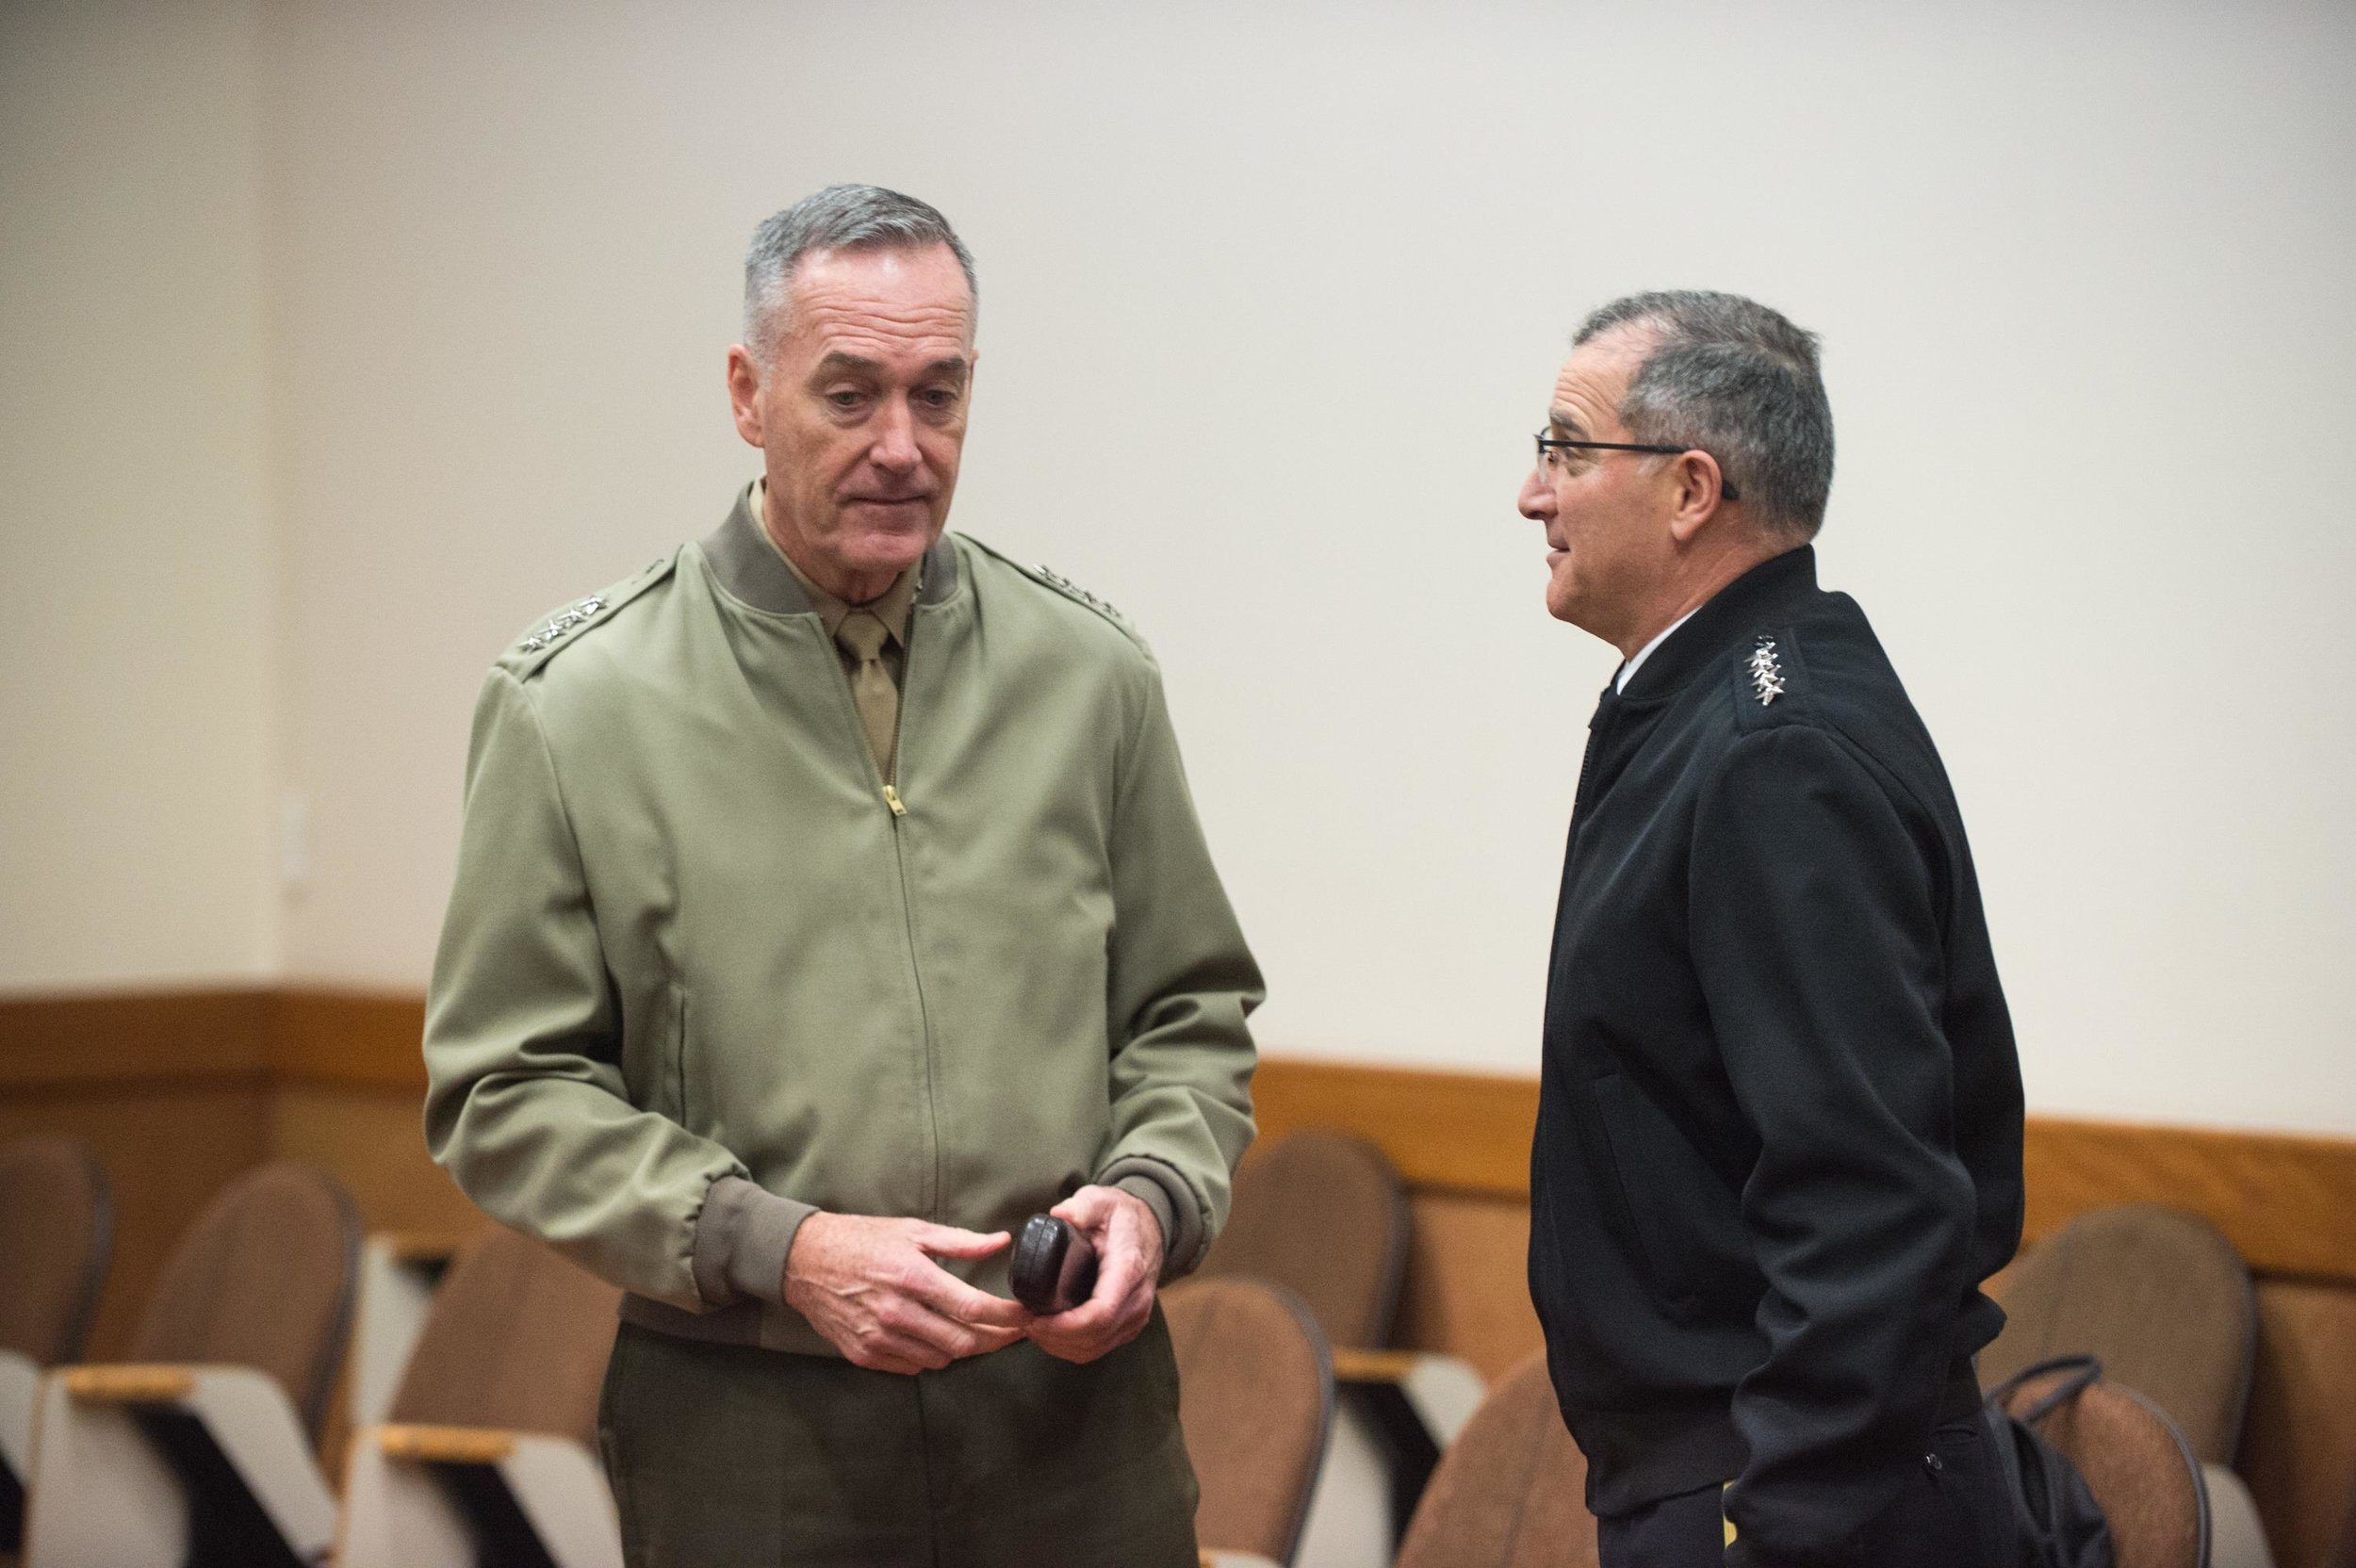 General Joseph Dunford, chairman of the Joint Chiefs of Staff, speaks with General Curtis M. Scaparrotti, Supreme Allied Commander Europe. (Sgt. James K. McCann/DoD Photo)